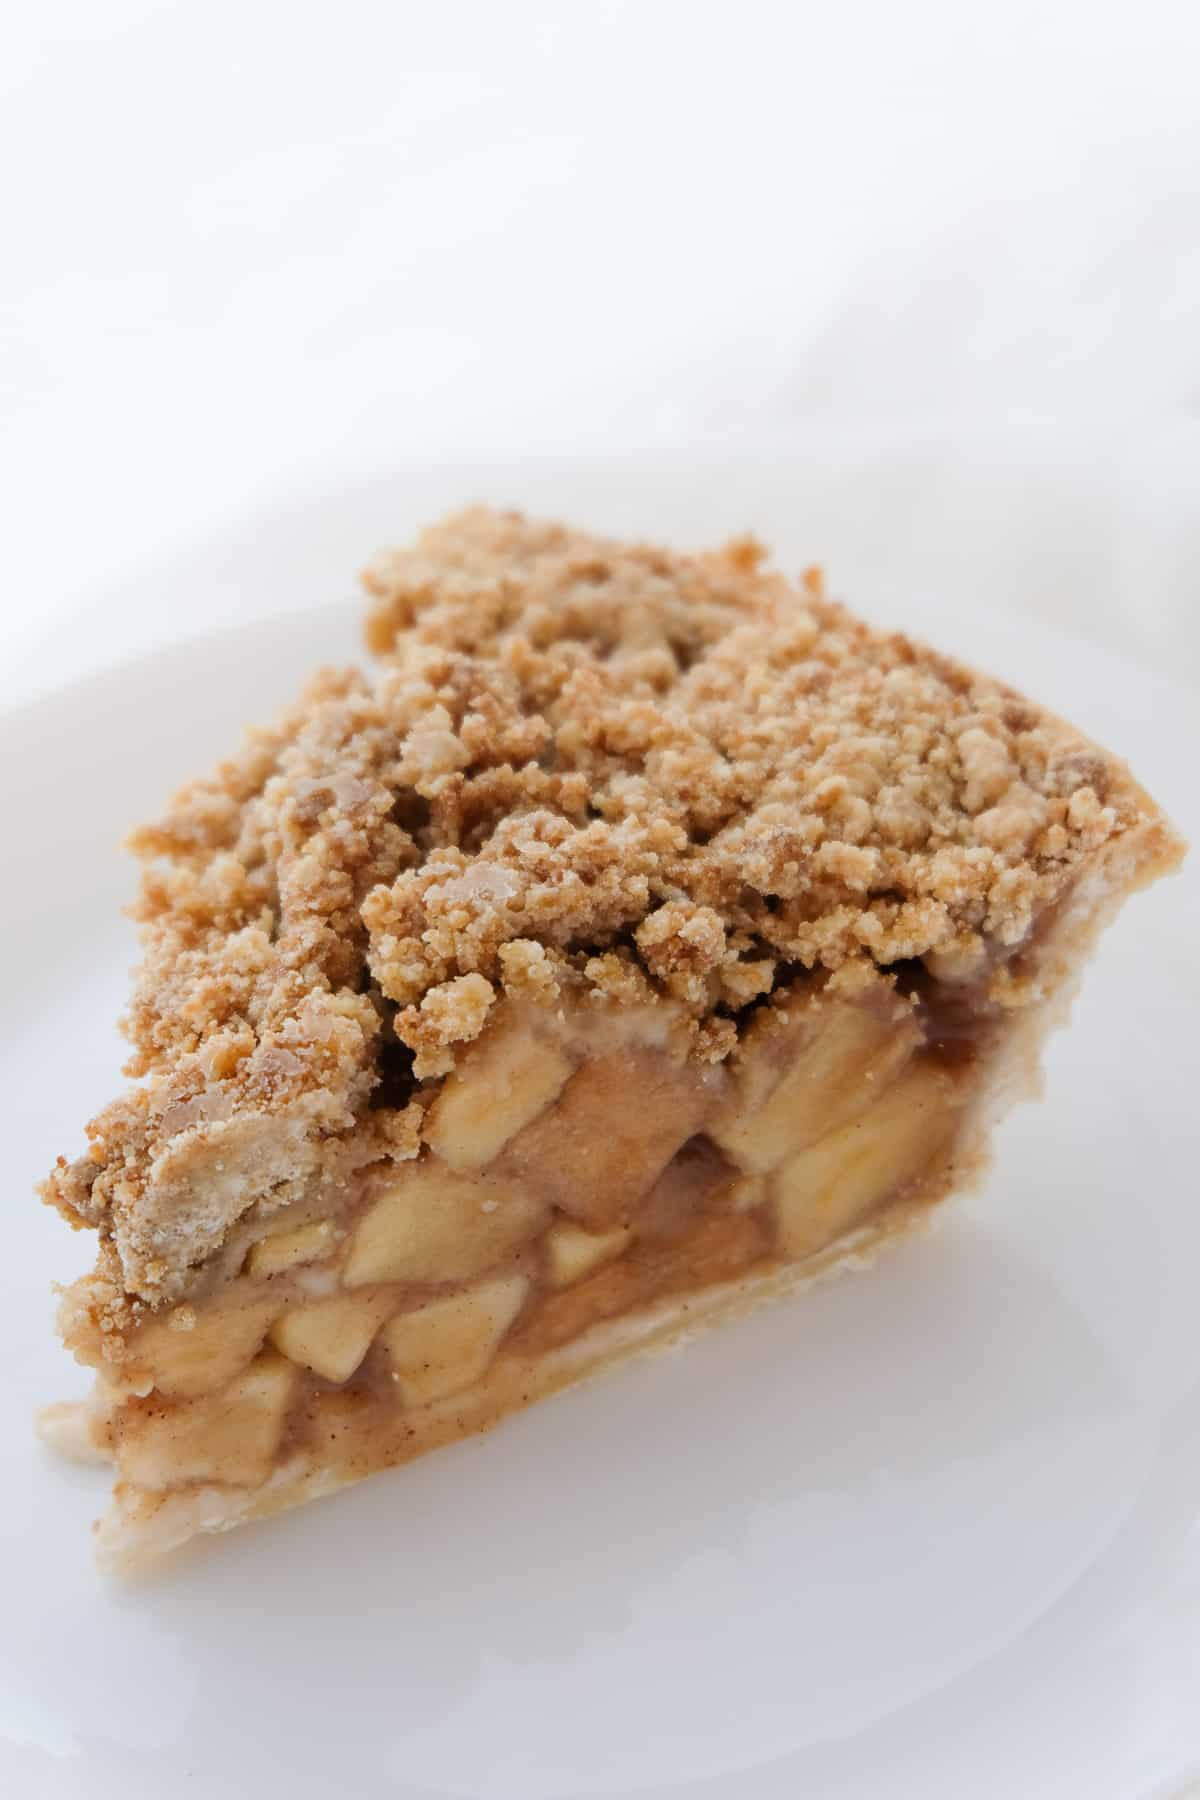 A slice of the best Vegan Apple Pie ever.